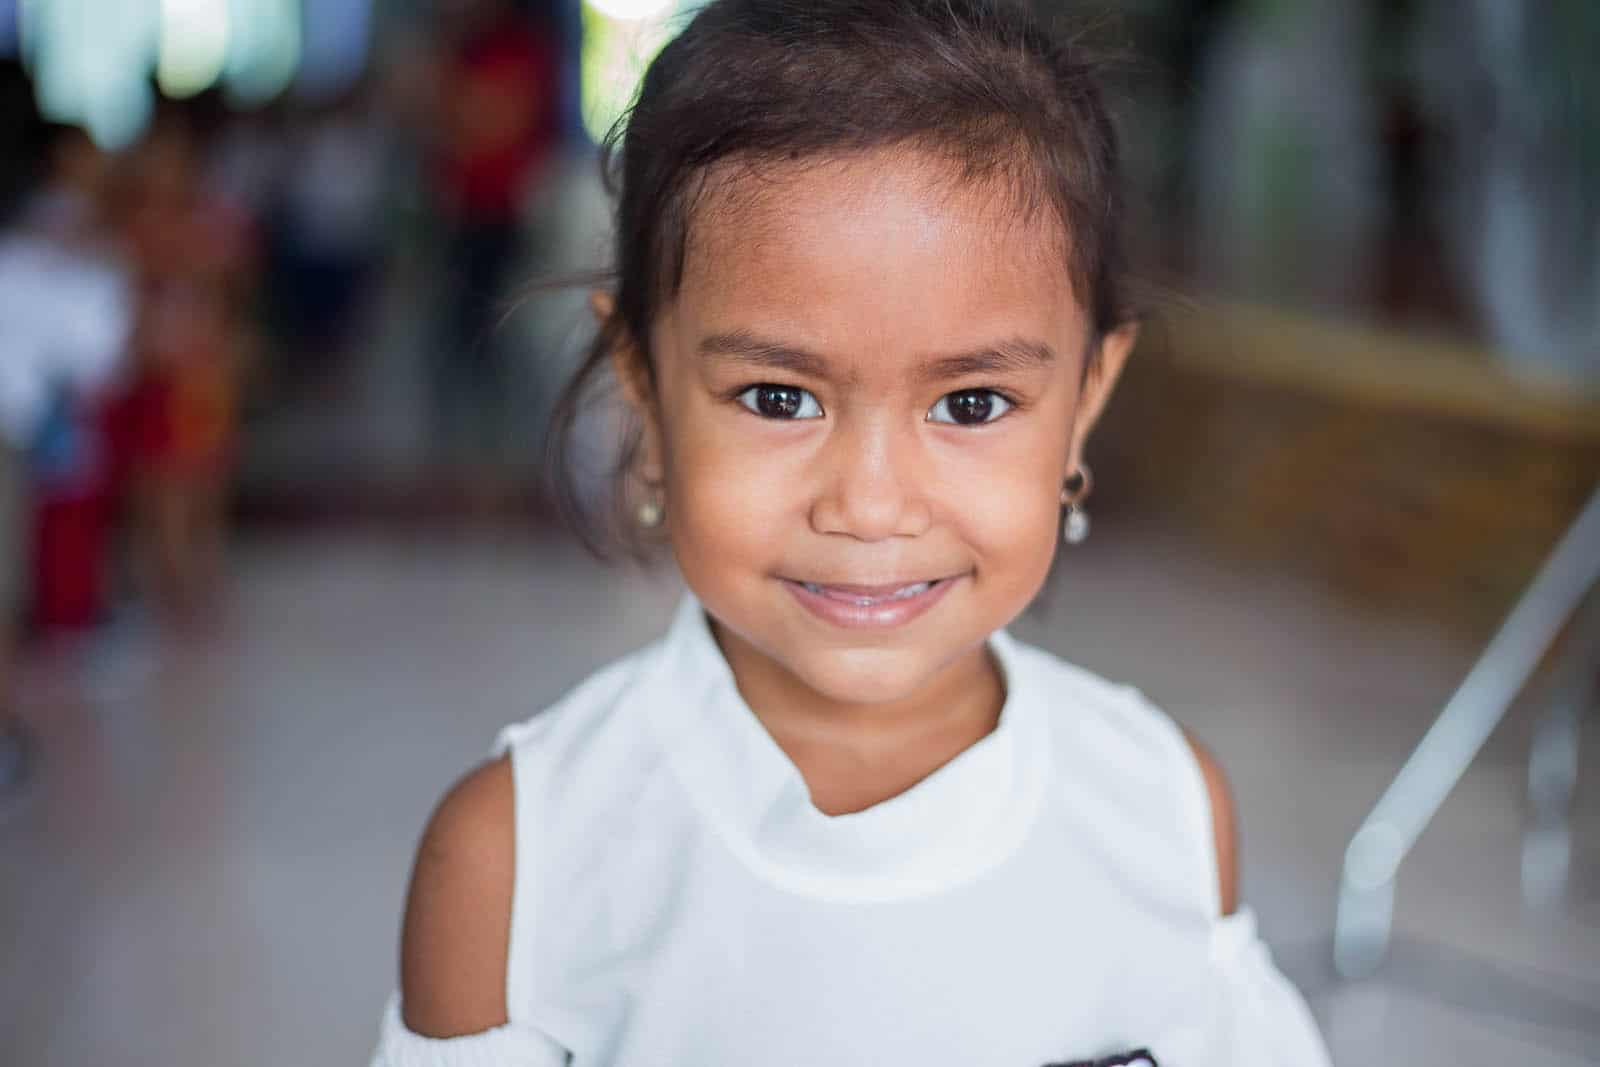 Convention on the Rights of the Child: A girl in a white shirt smiles at the camera.